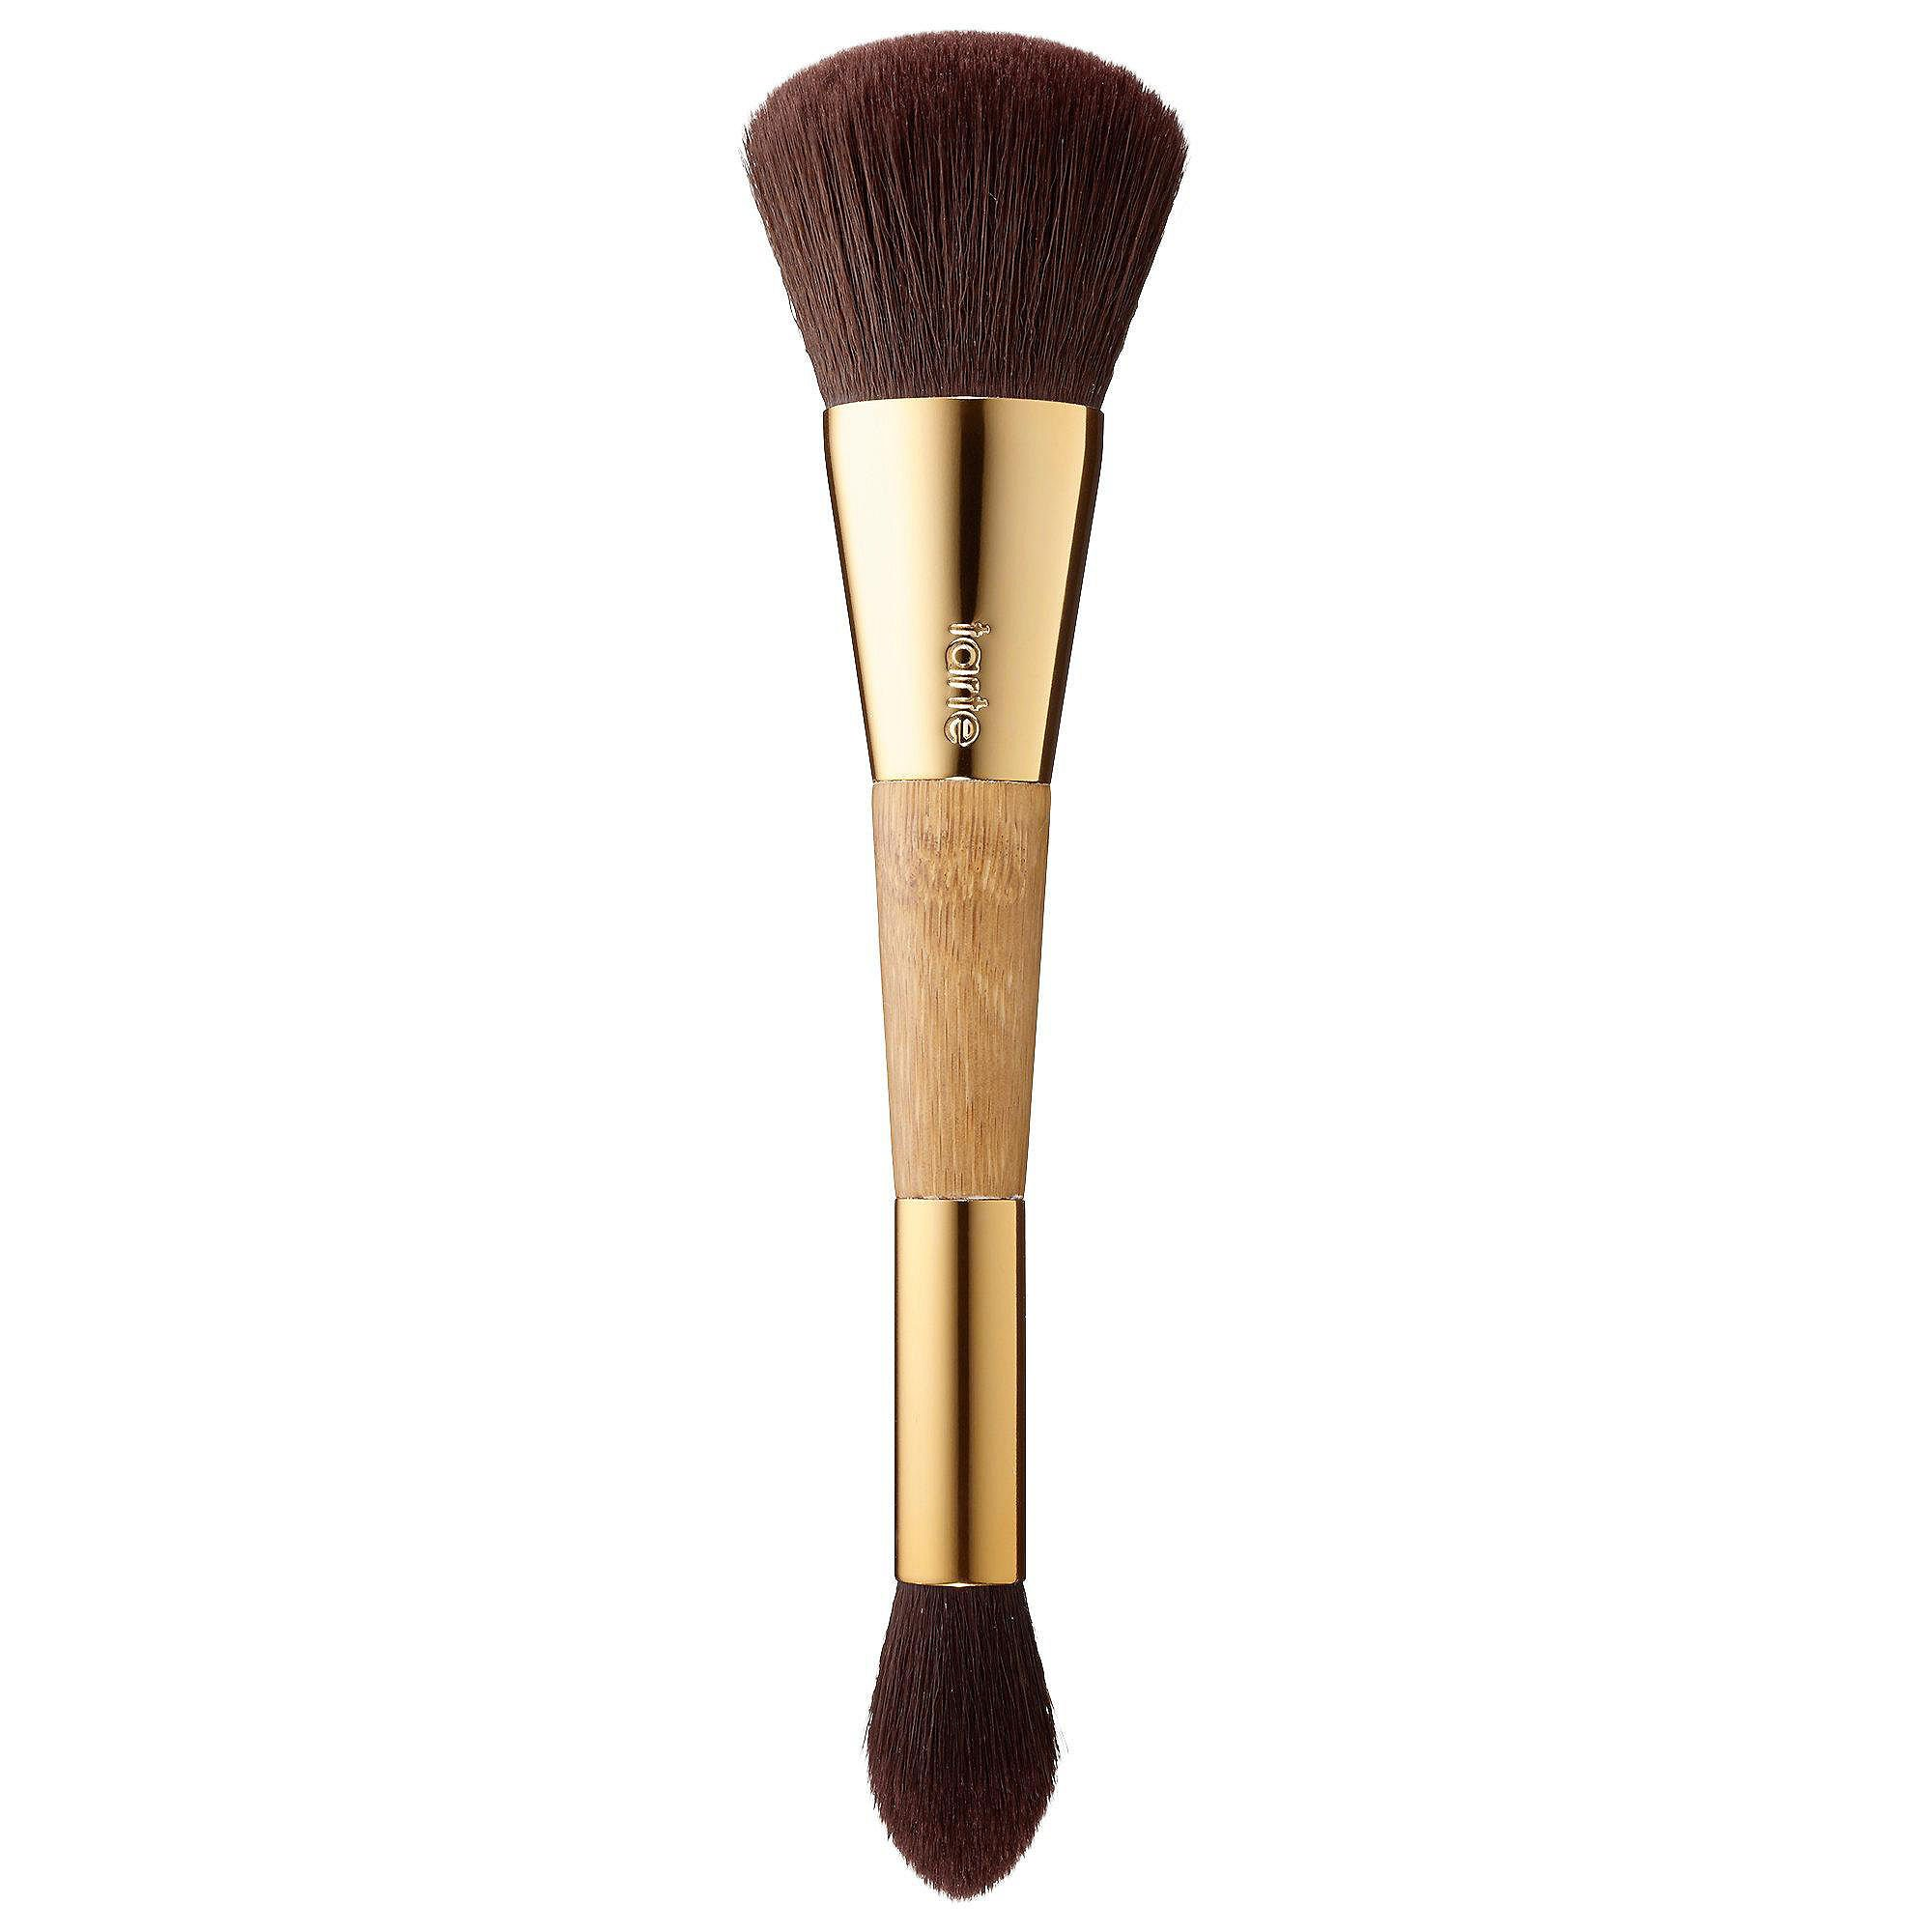 Tarte Bronze & Glow Double-Ended Contour Brush In Box